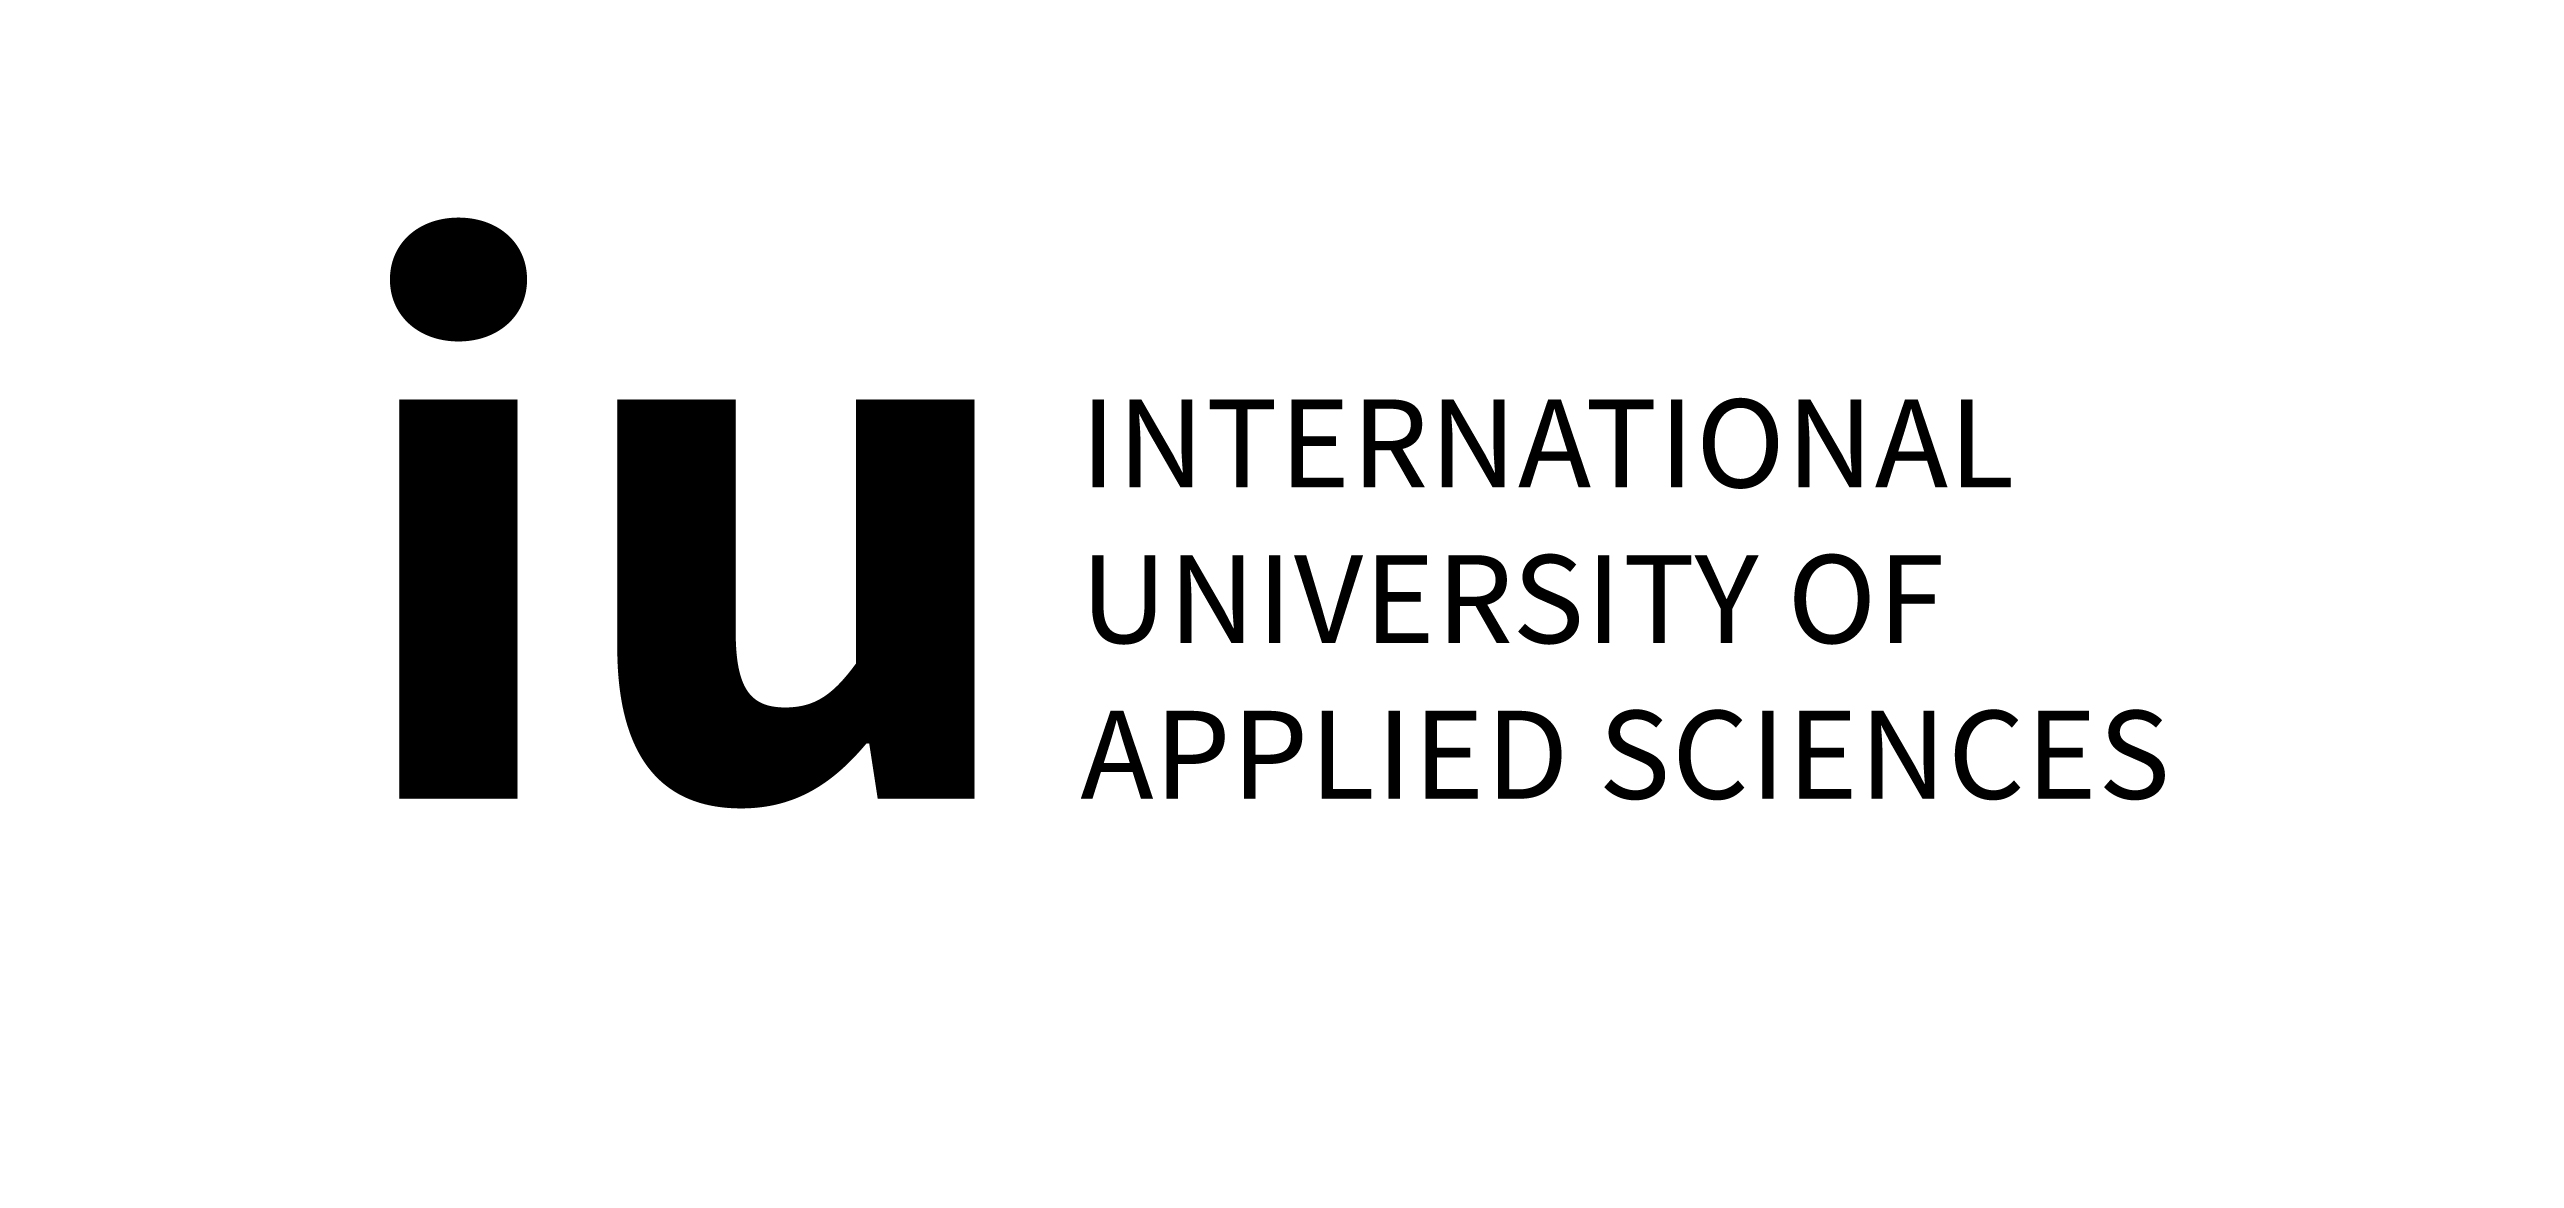 More about IU International University of Applied Sciences